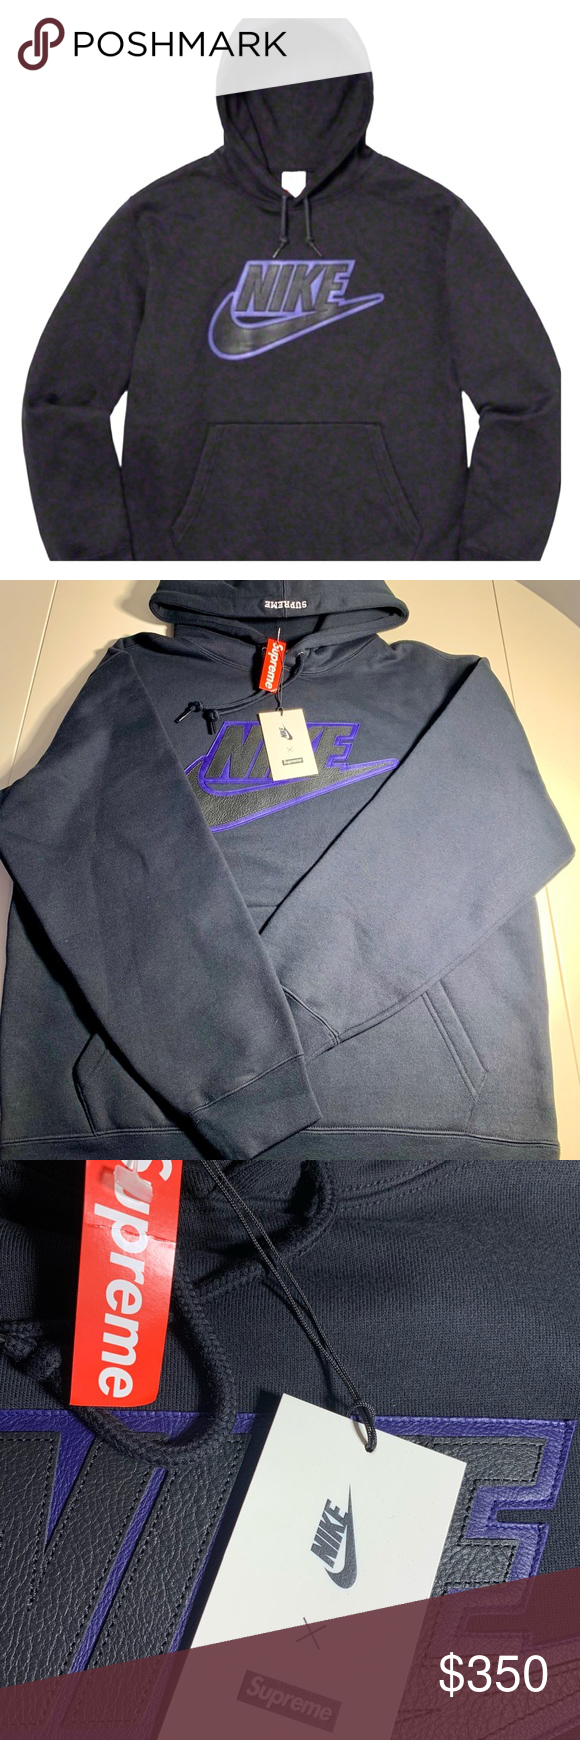 Supreme Nike Leather Applique Hooded Sweatshirt M Best Christmas Present Real Leather Nike Applique In Front Nike Leather Applique Sweatshirt Sweatshirts [ 1740 x 580 Pixel ]